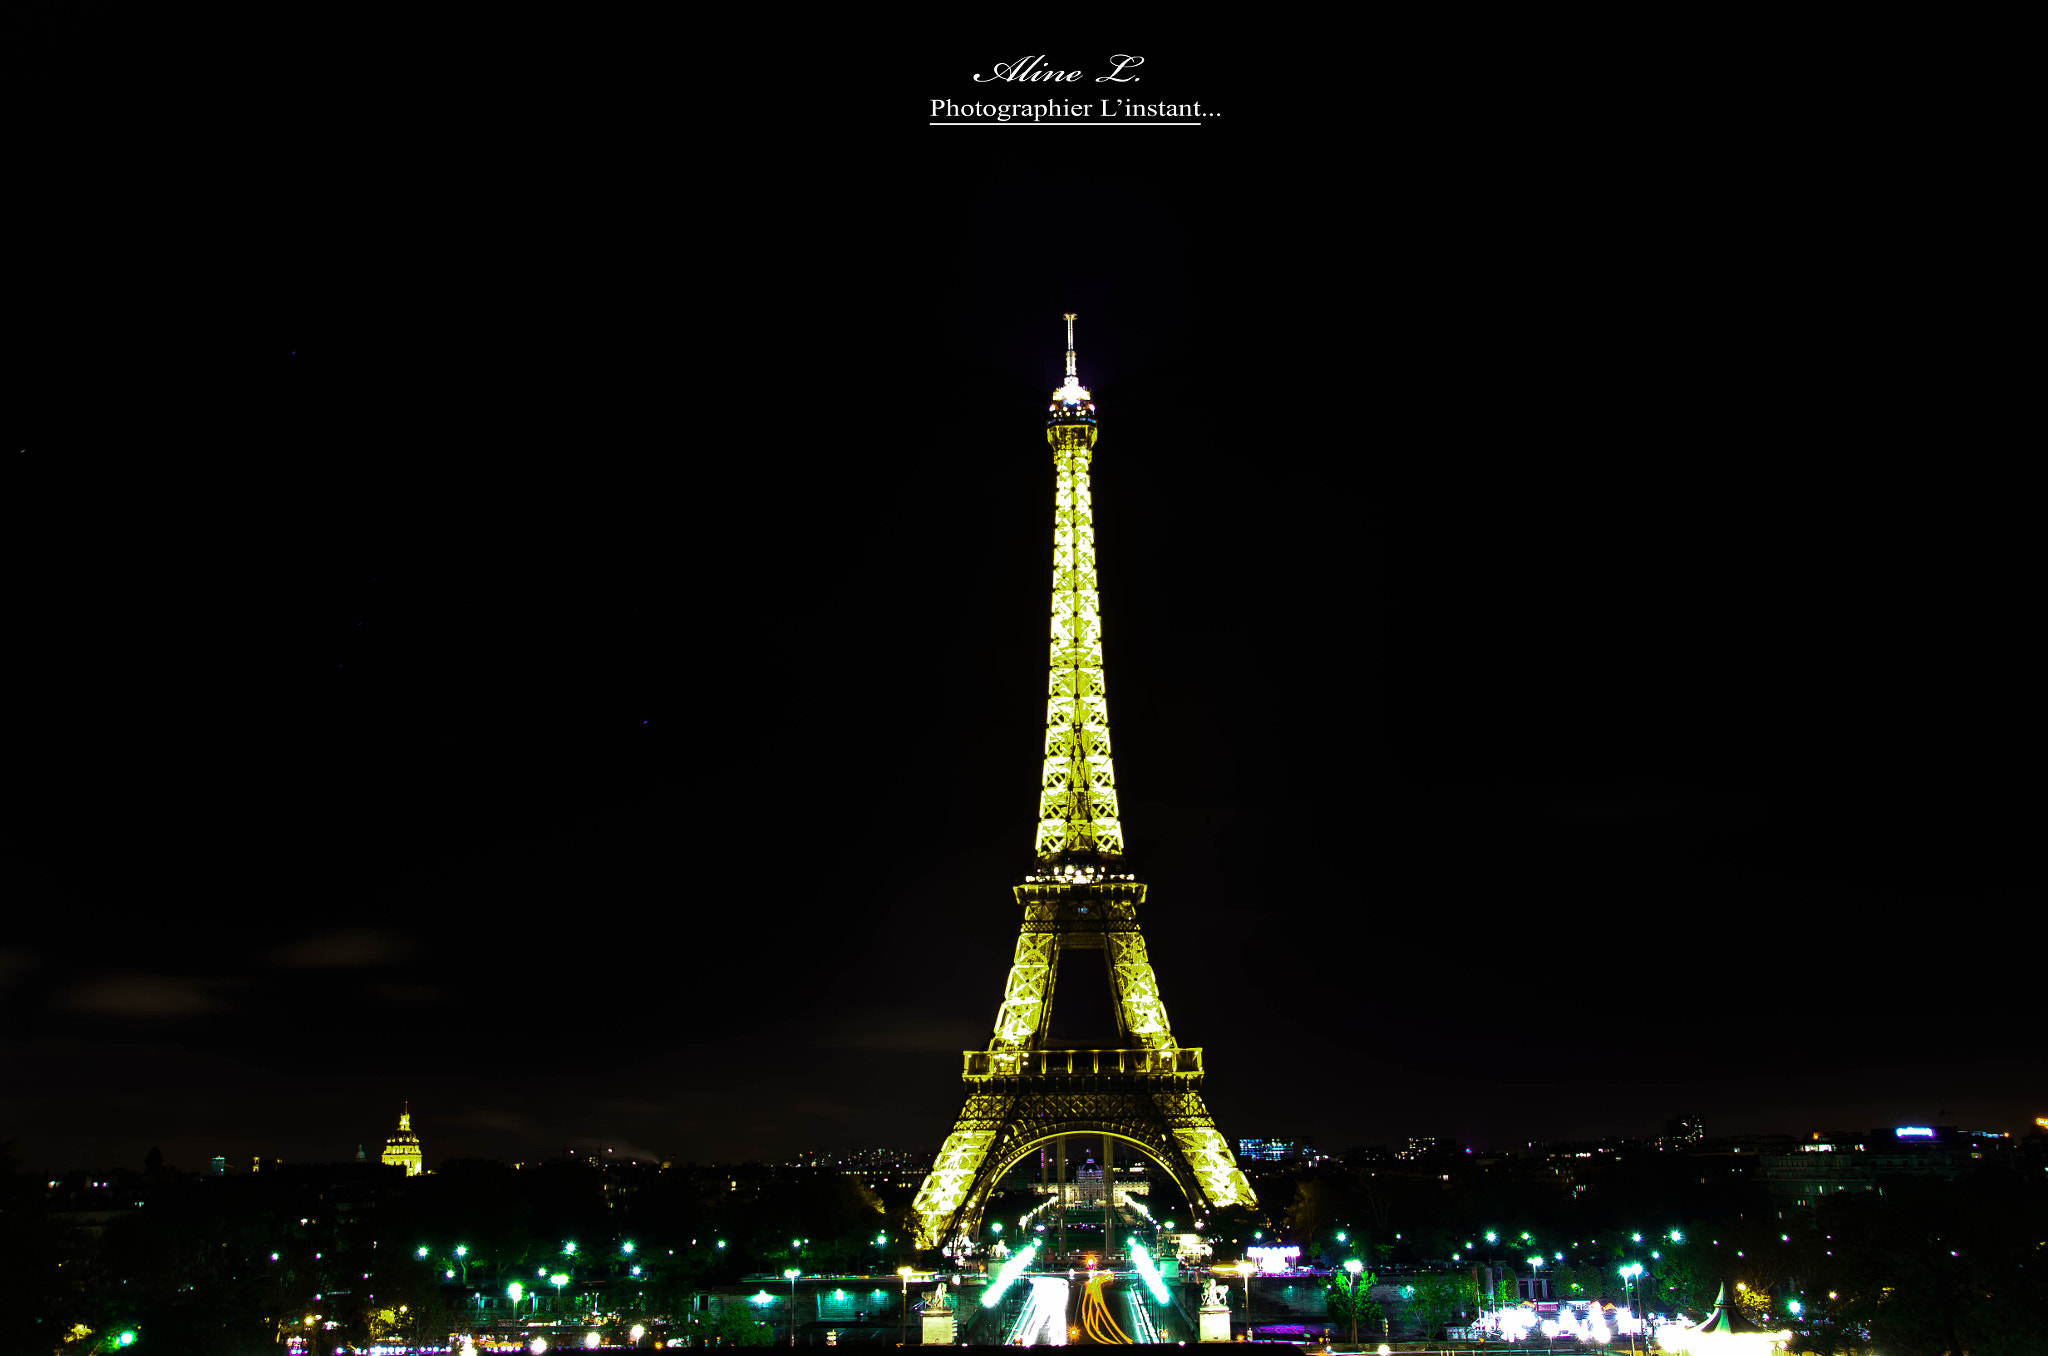 Photograph La Tour Eiffel, la plus belle dame de France by Aline -L on 500px